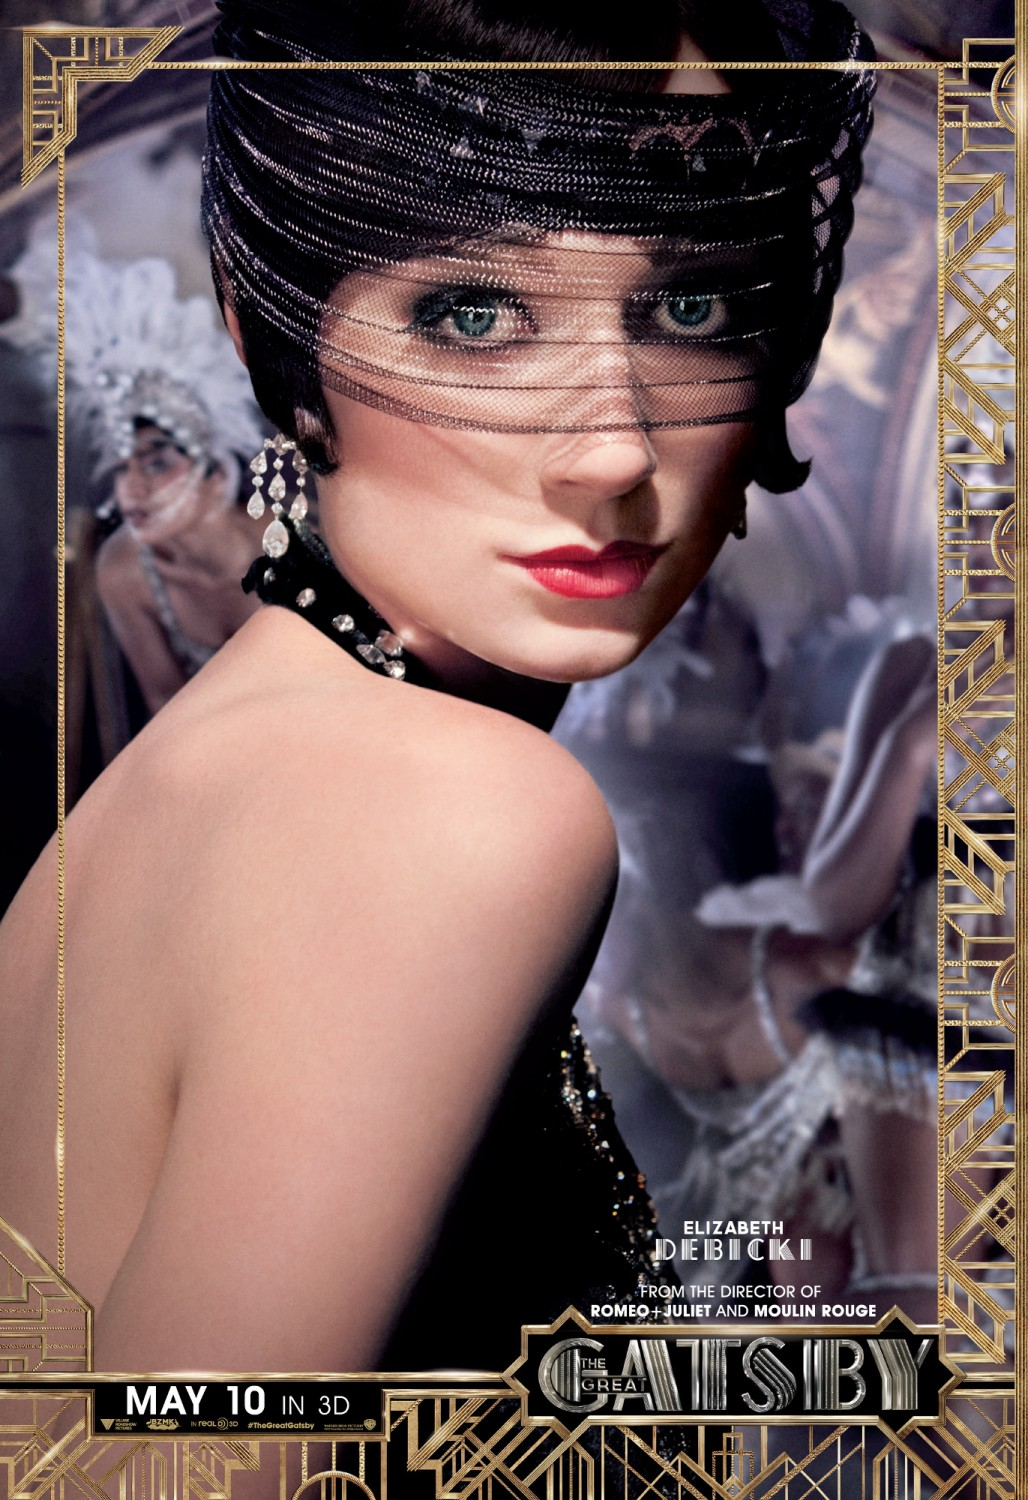 the great gatsby Get free homework help on f scott fitzgerald's the great gatsby: book summary, chapter summary and analysis, quotes, essays, and character analysis courtesy of cliffsnotes.